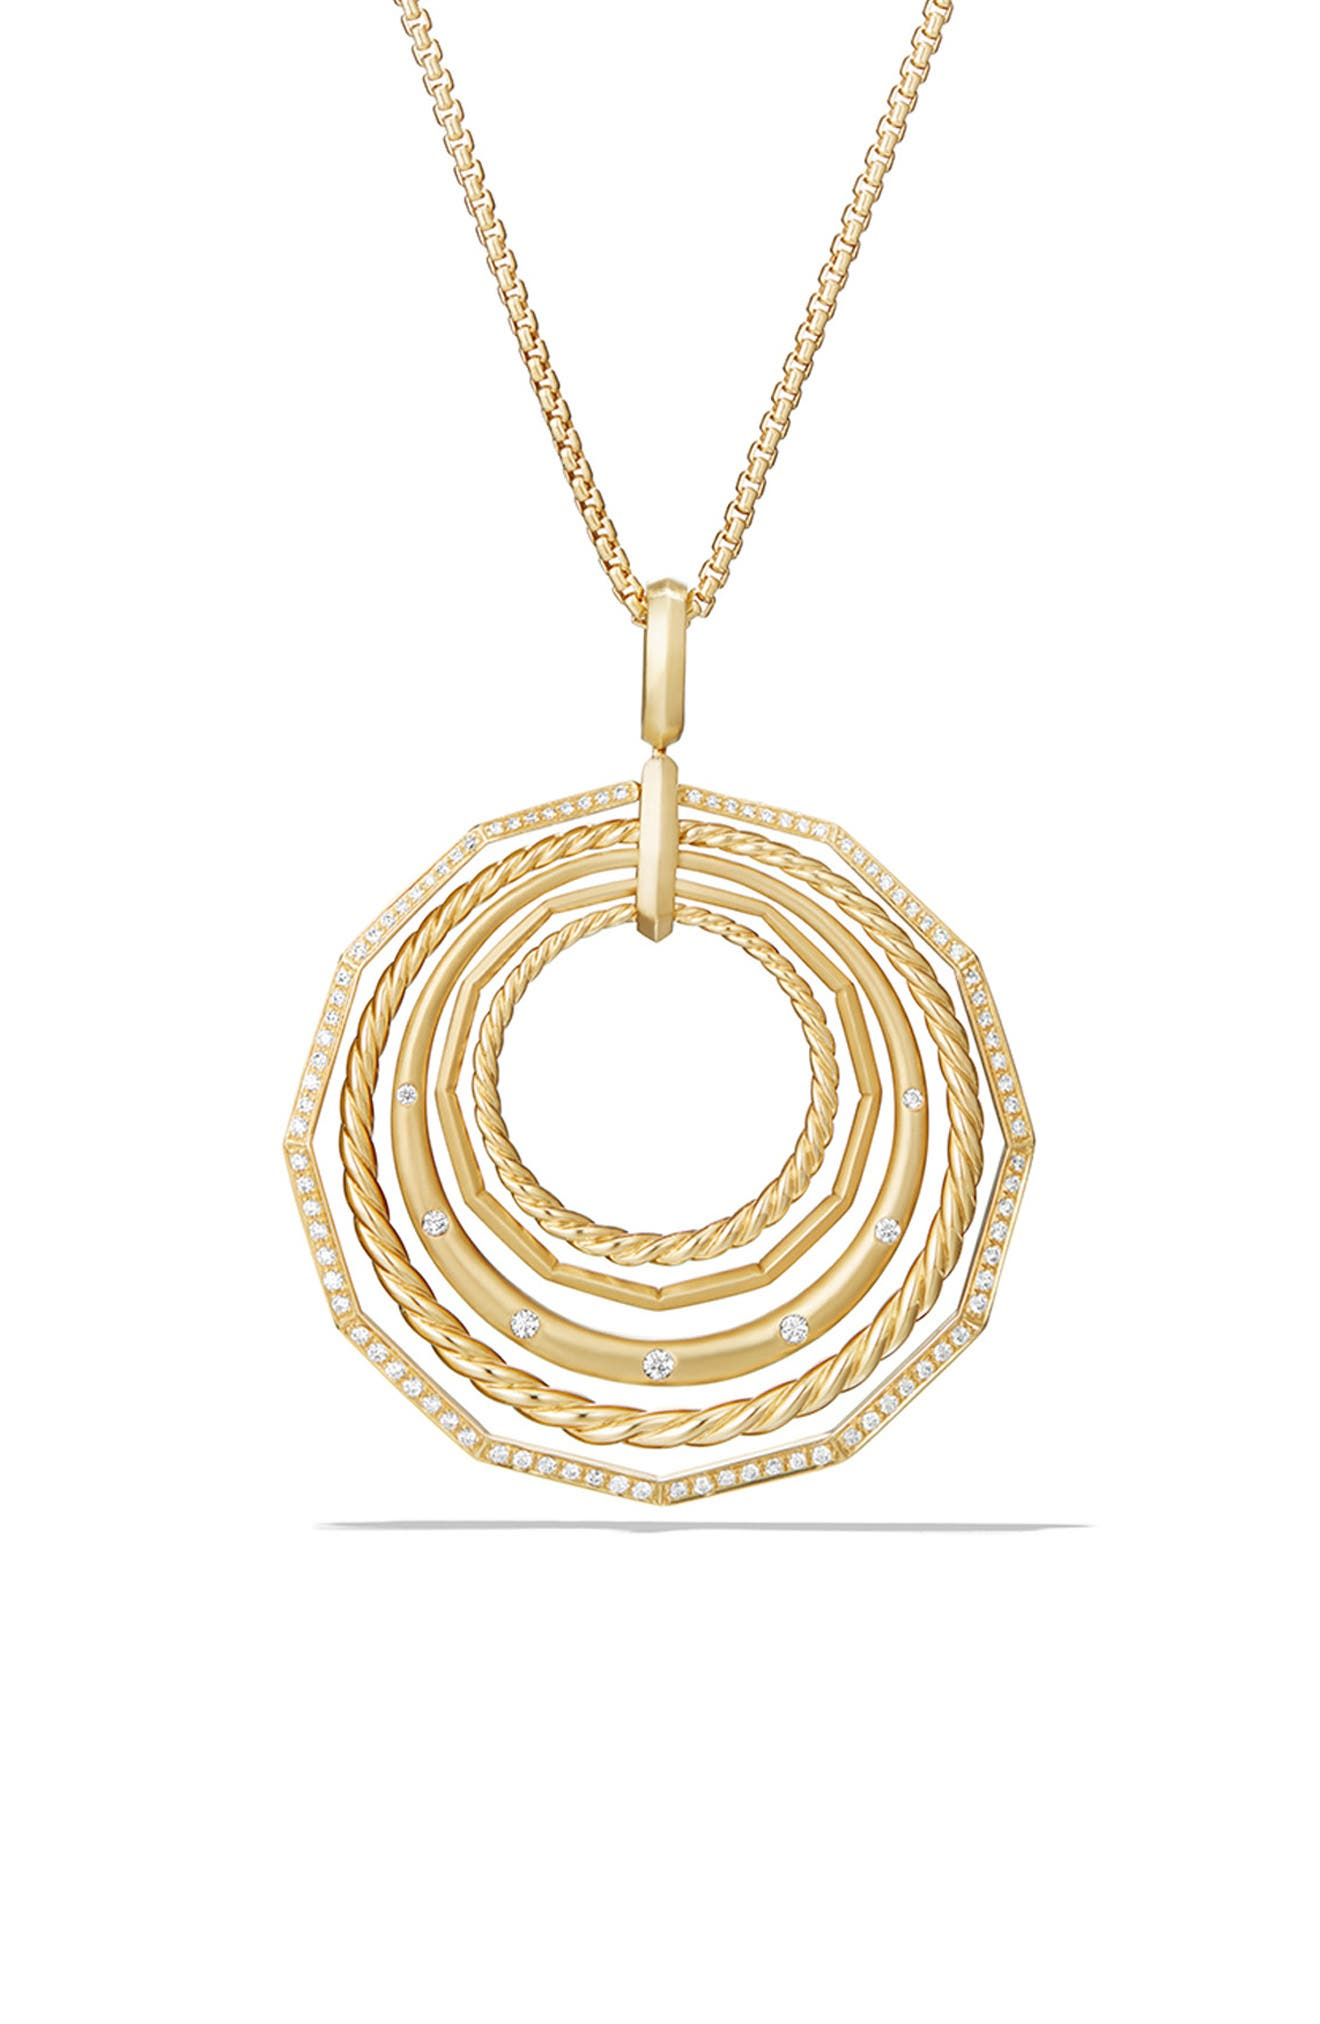 Stax Long Pendant 18K Necklace with Diamonds, 41mm,                             Main thumbnail 1, color,                             YELLOW GOLD